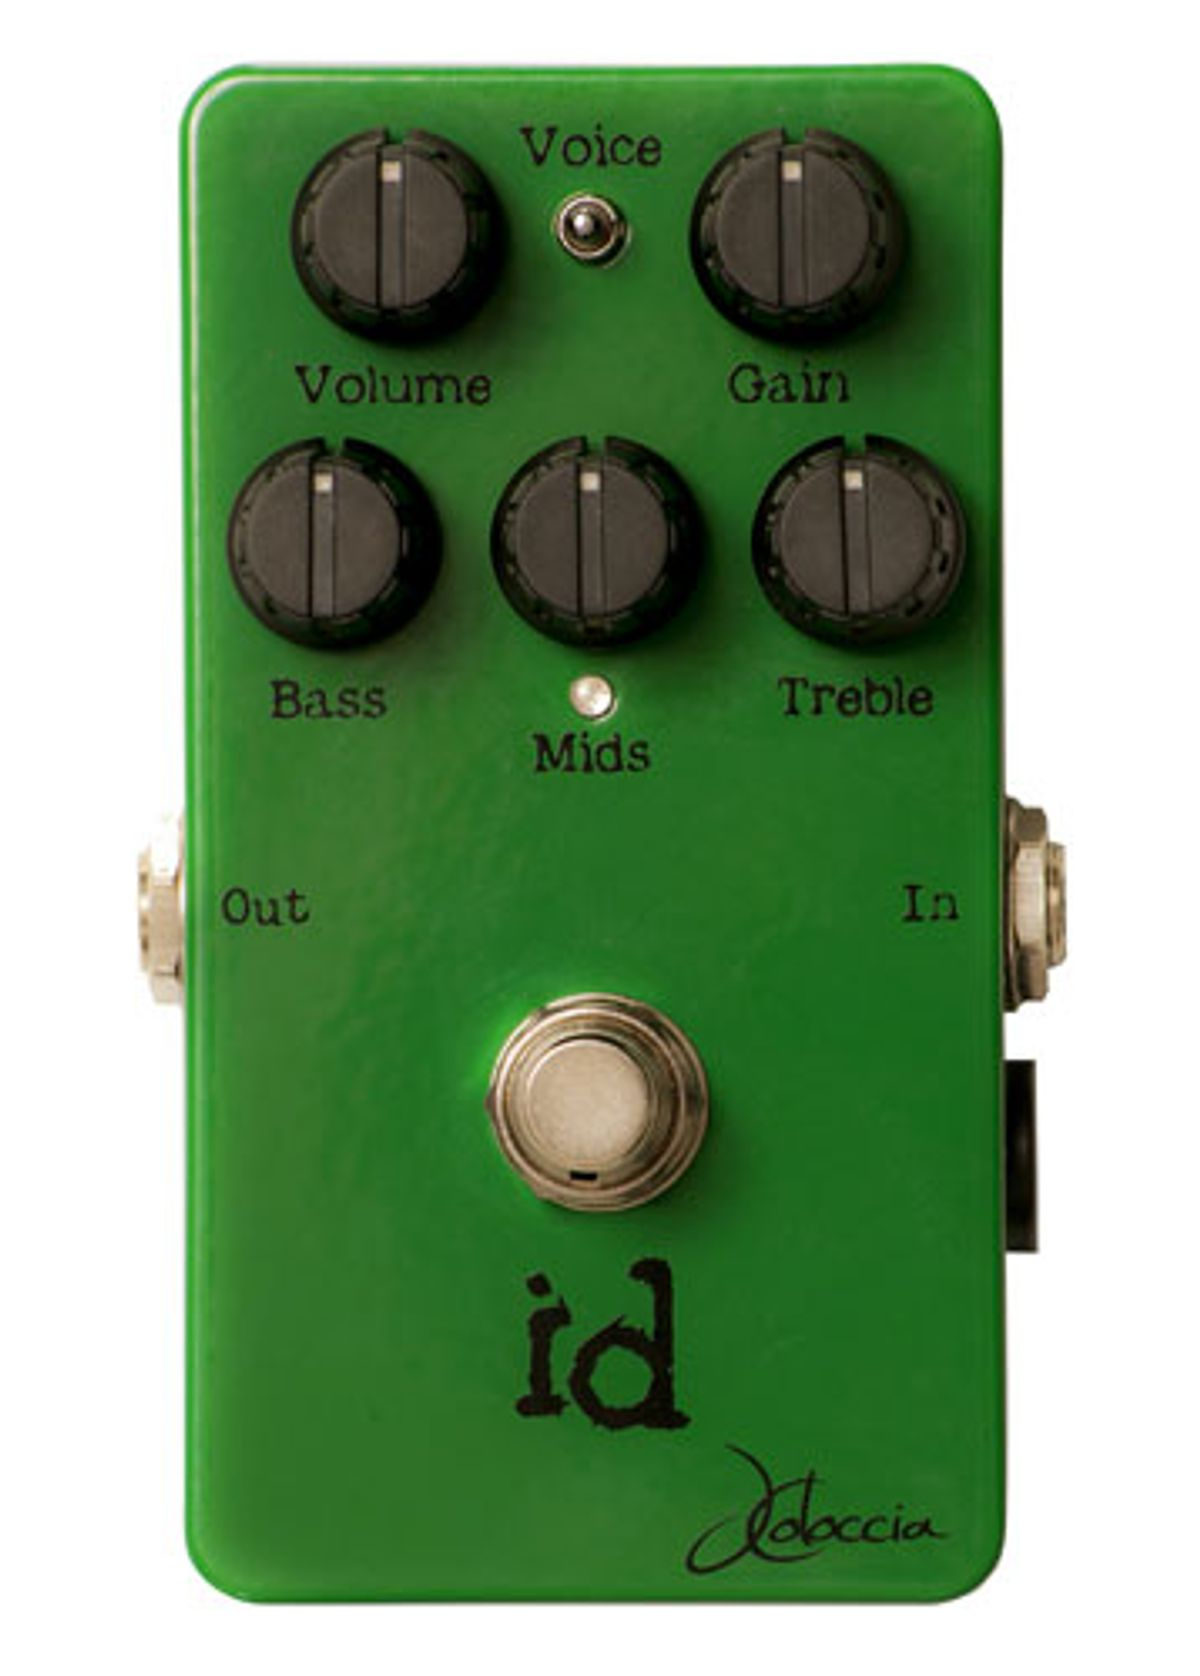 JColoccia Guitars Introduces the id Overdrive